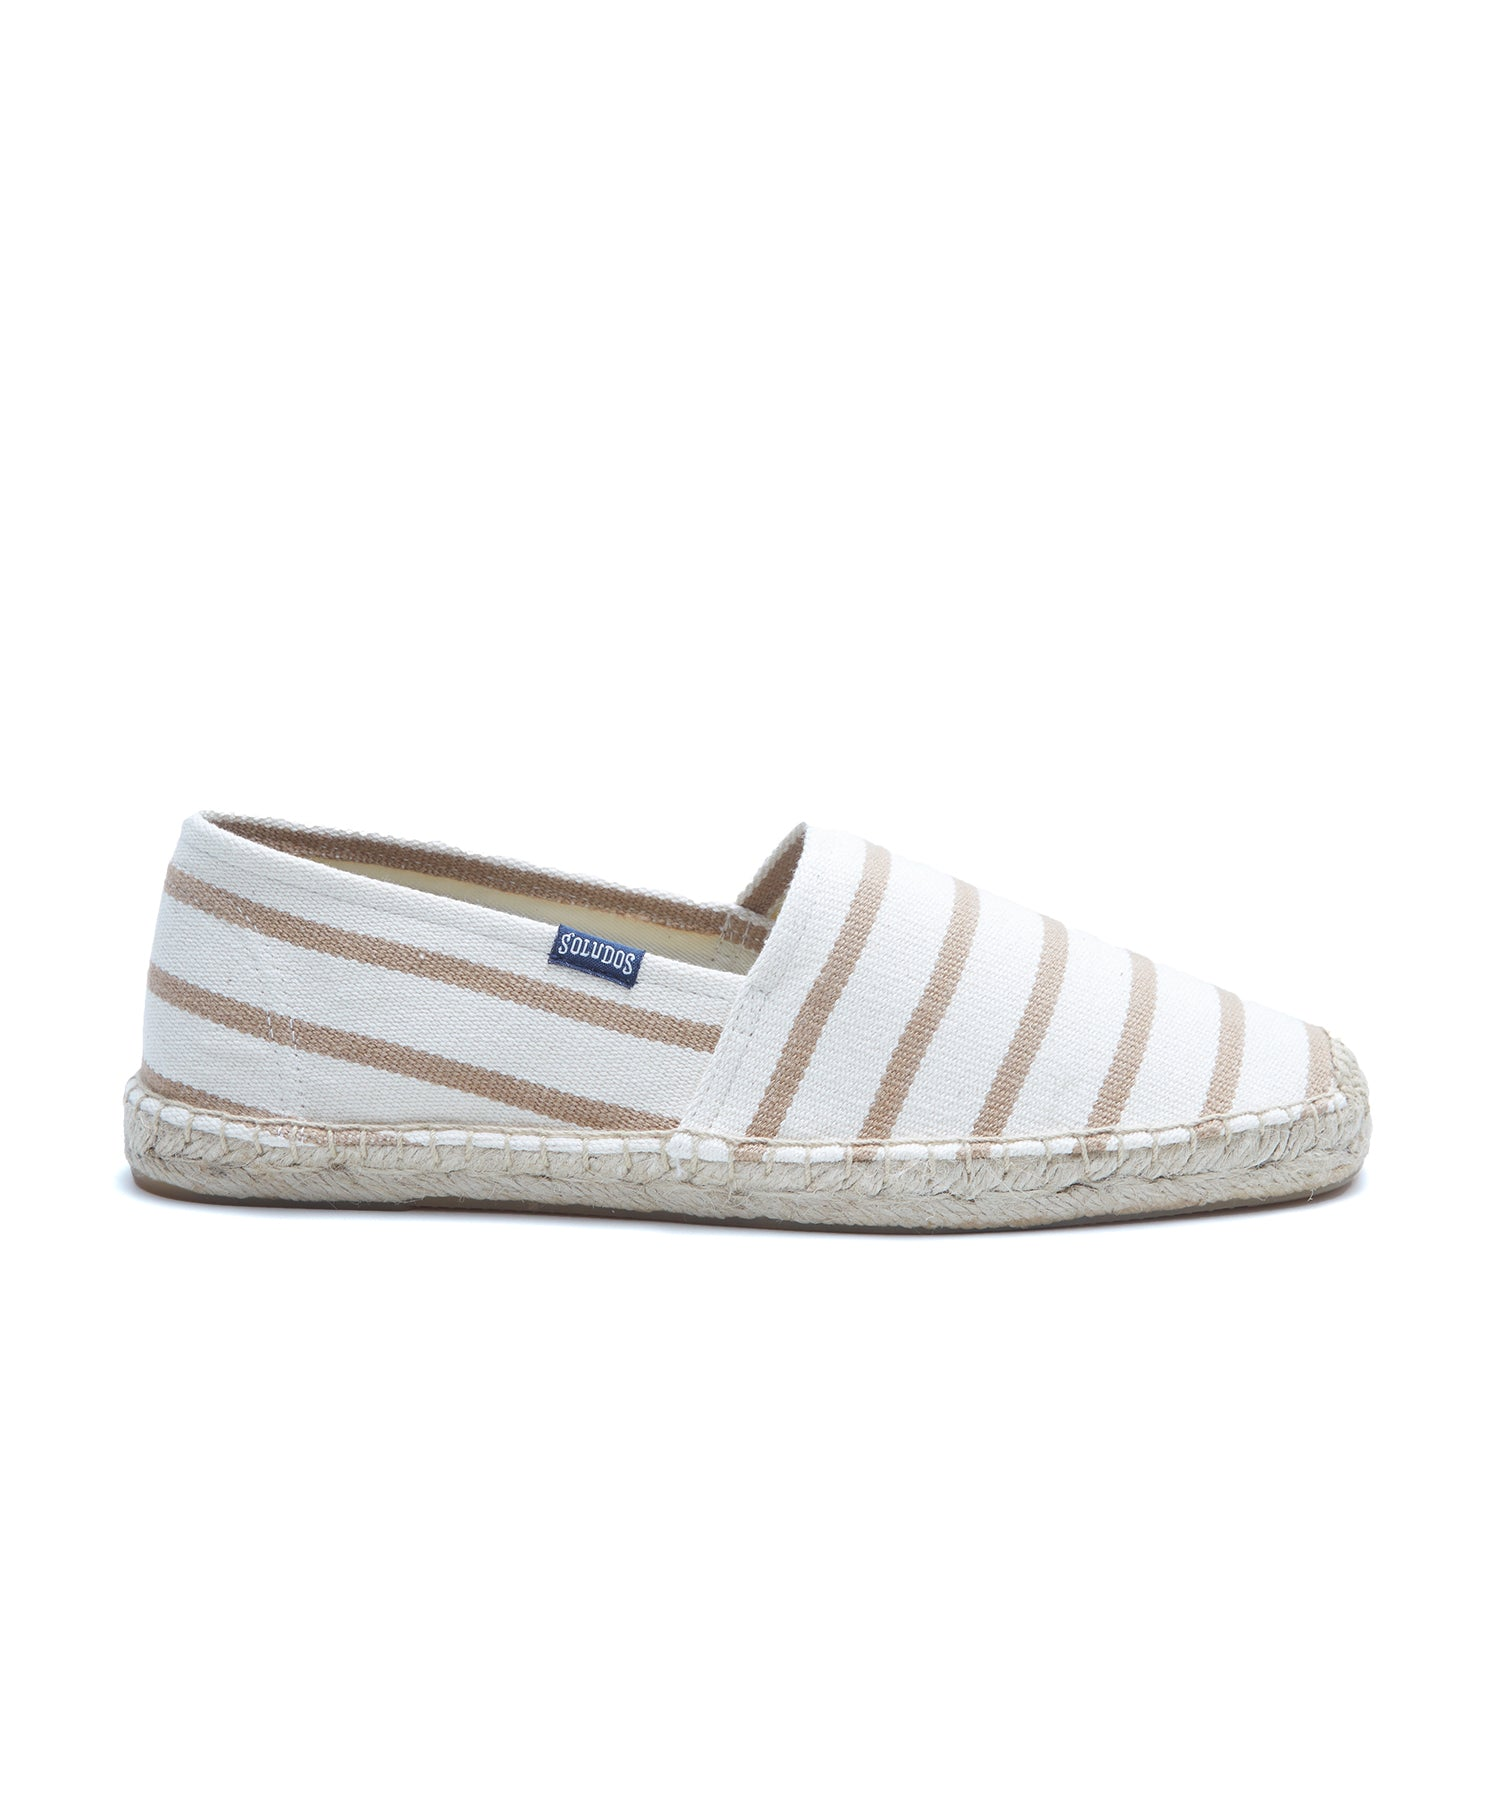 Soludos Stripe Original Dalie in Natural/Tan